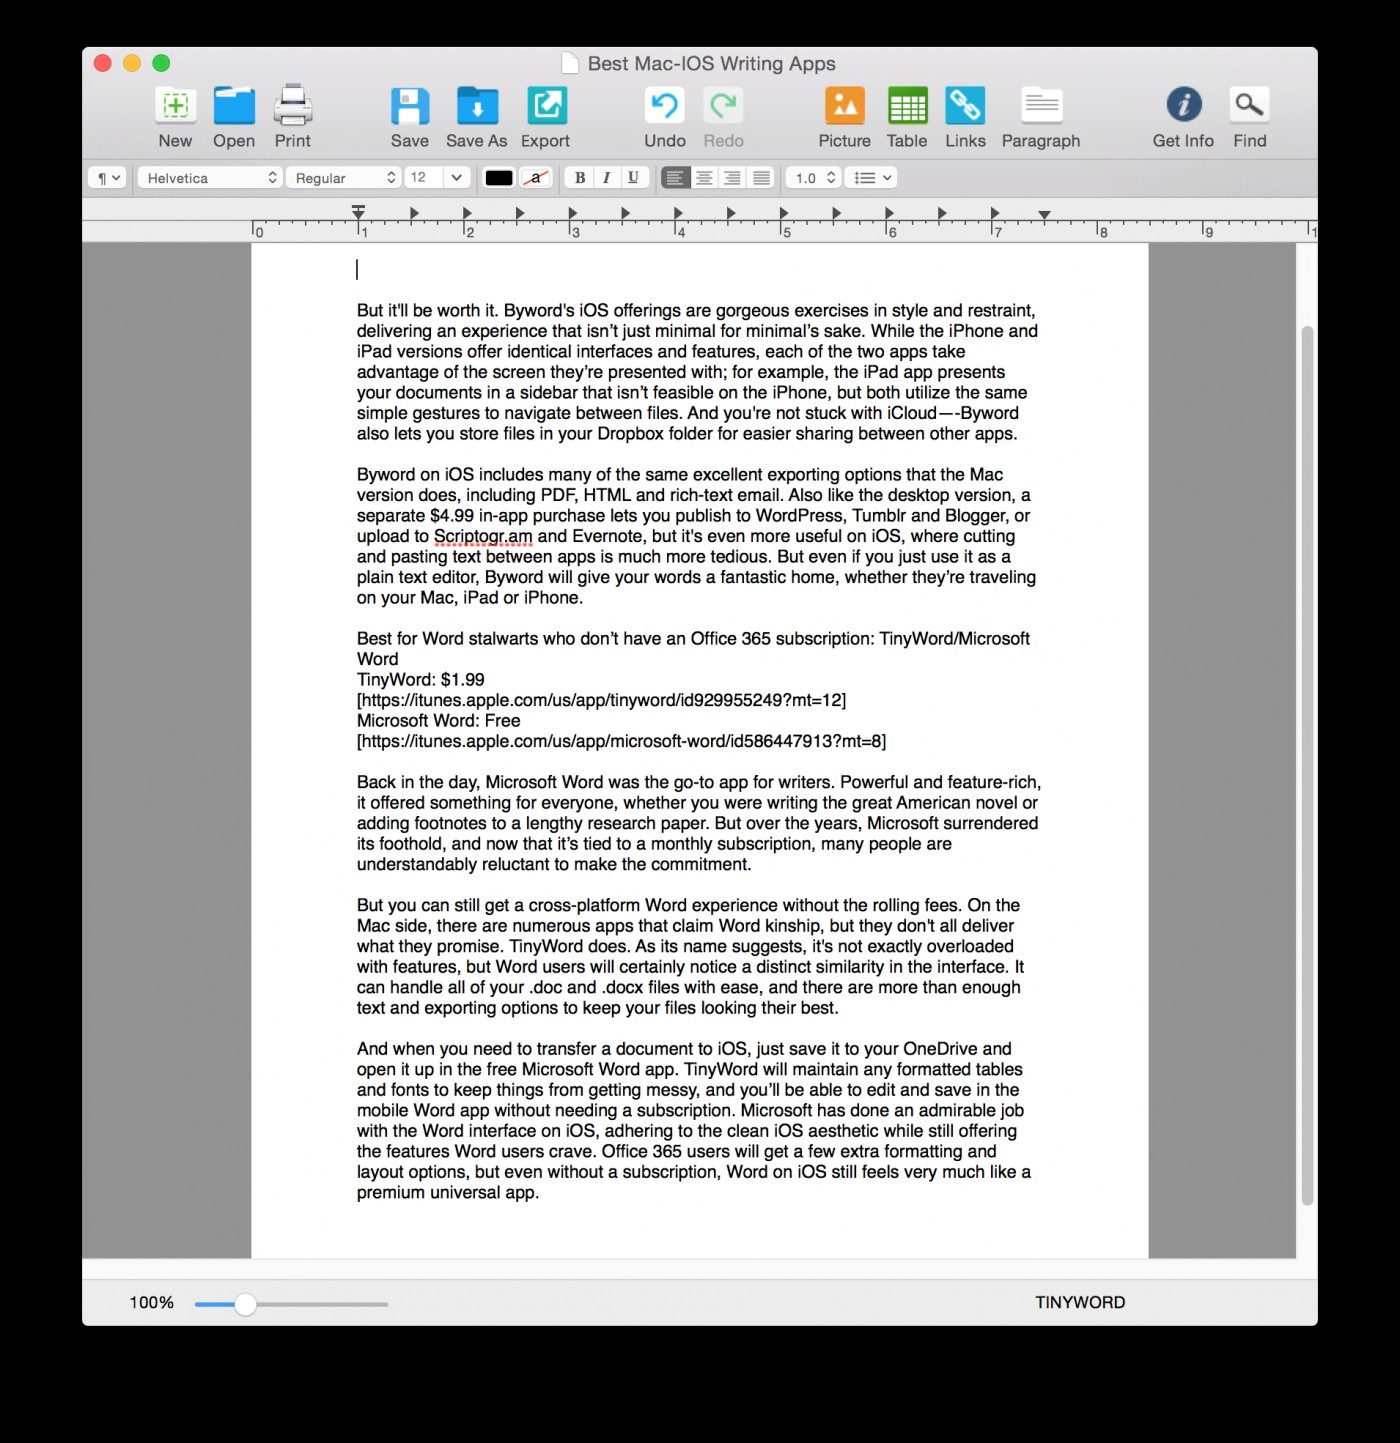 003 Research Paper Best Writing Software Mac Amazing 1400